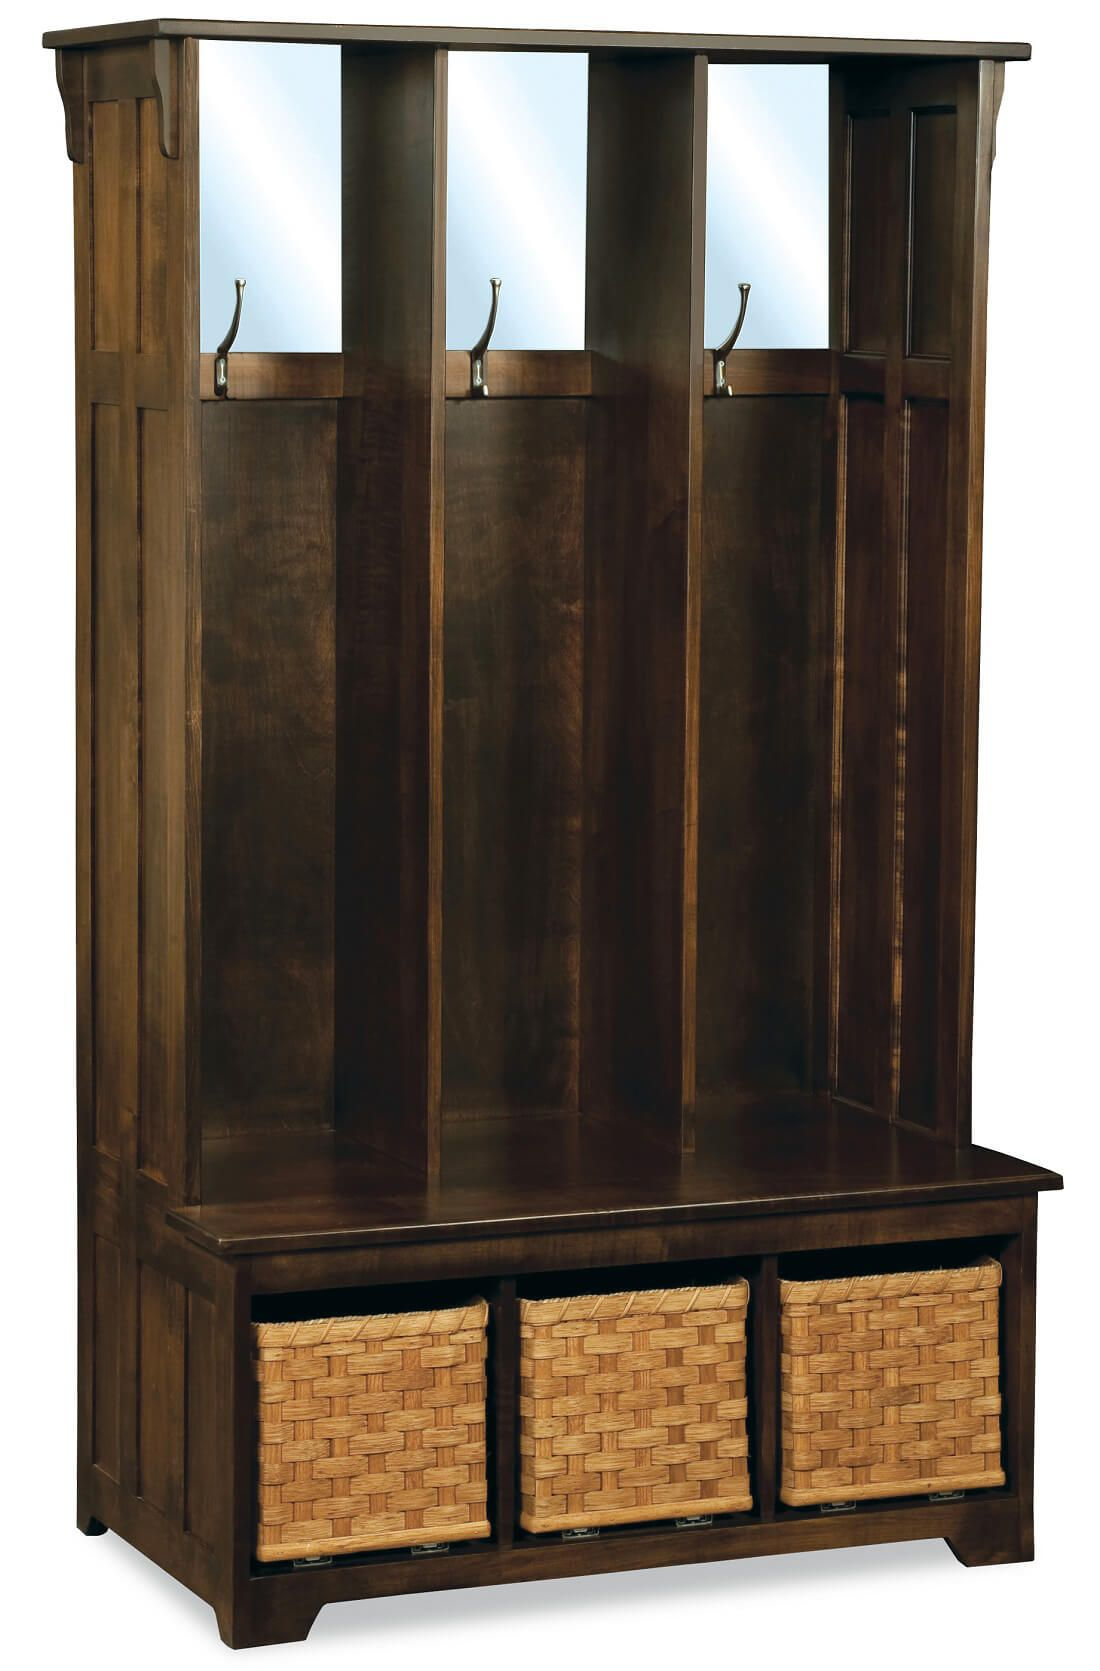 Marianna Entry Seat With Storage Countryside Amish Furniture